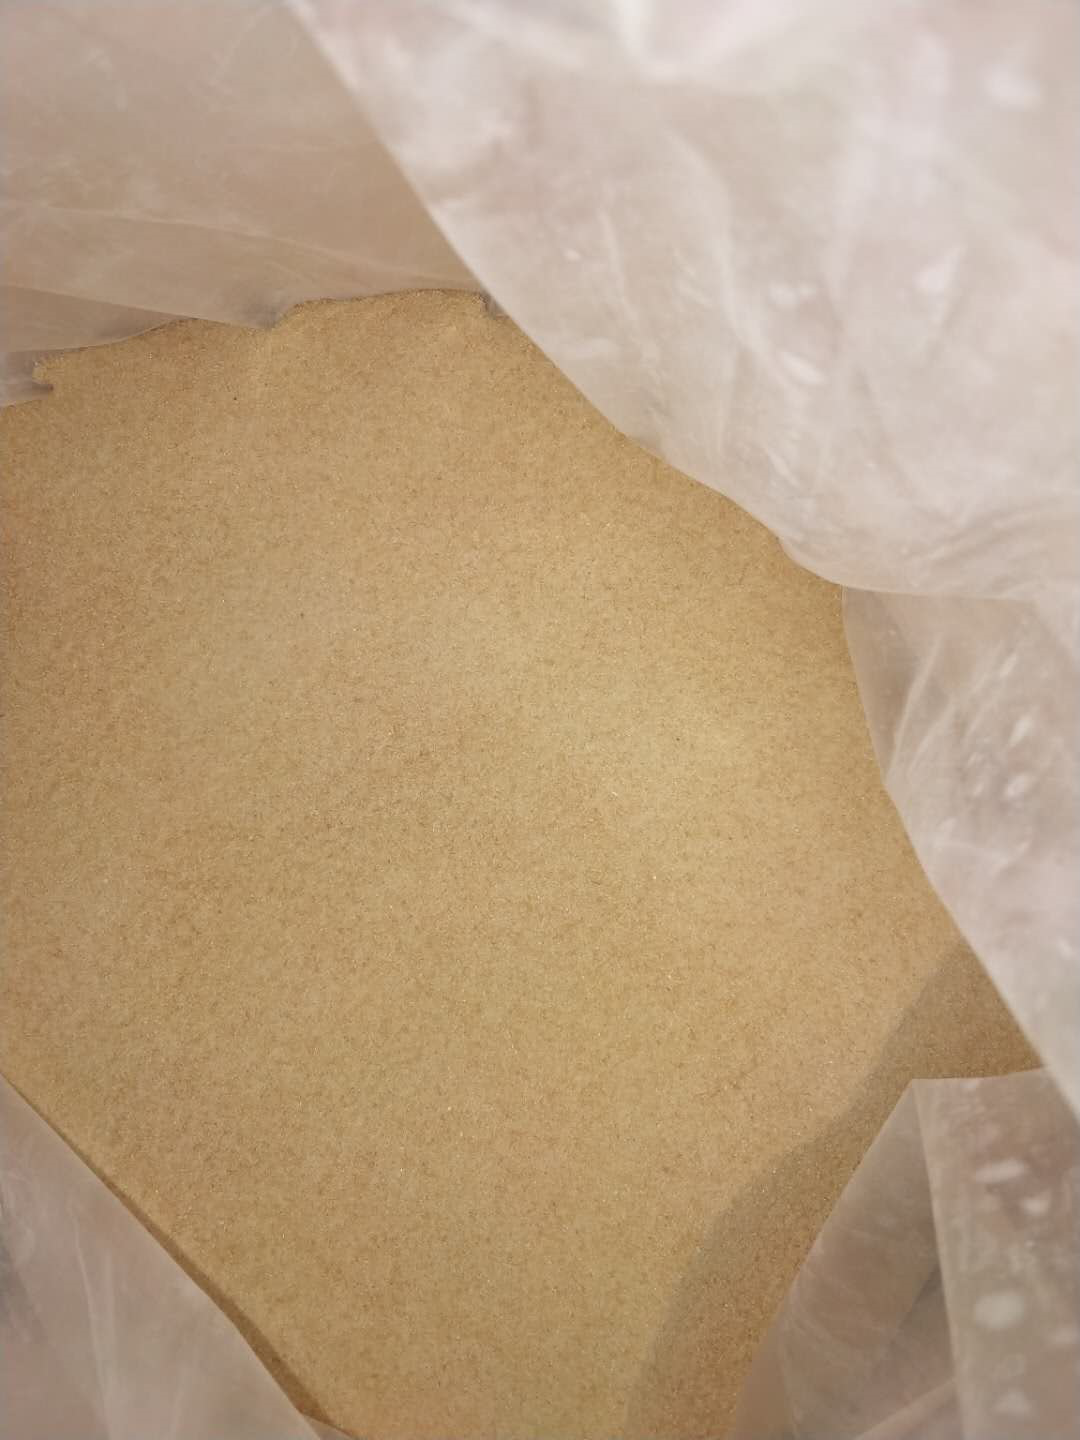 Technical Gelatin 160-220 Bloom from animal connective for plate  furniture  match  feed  packaging